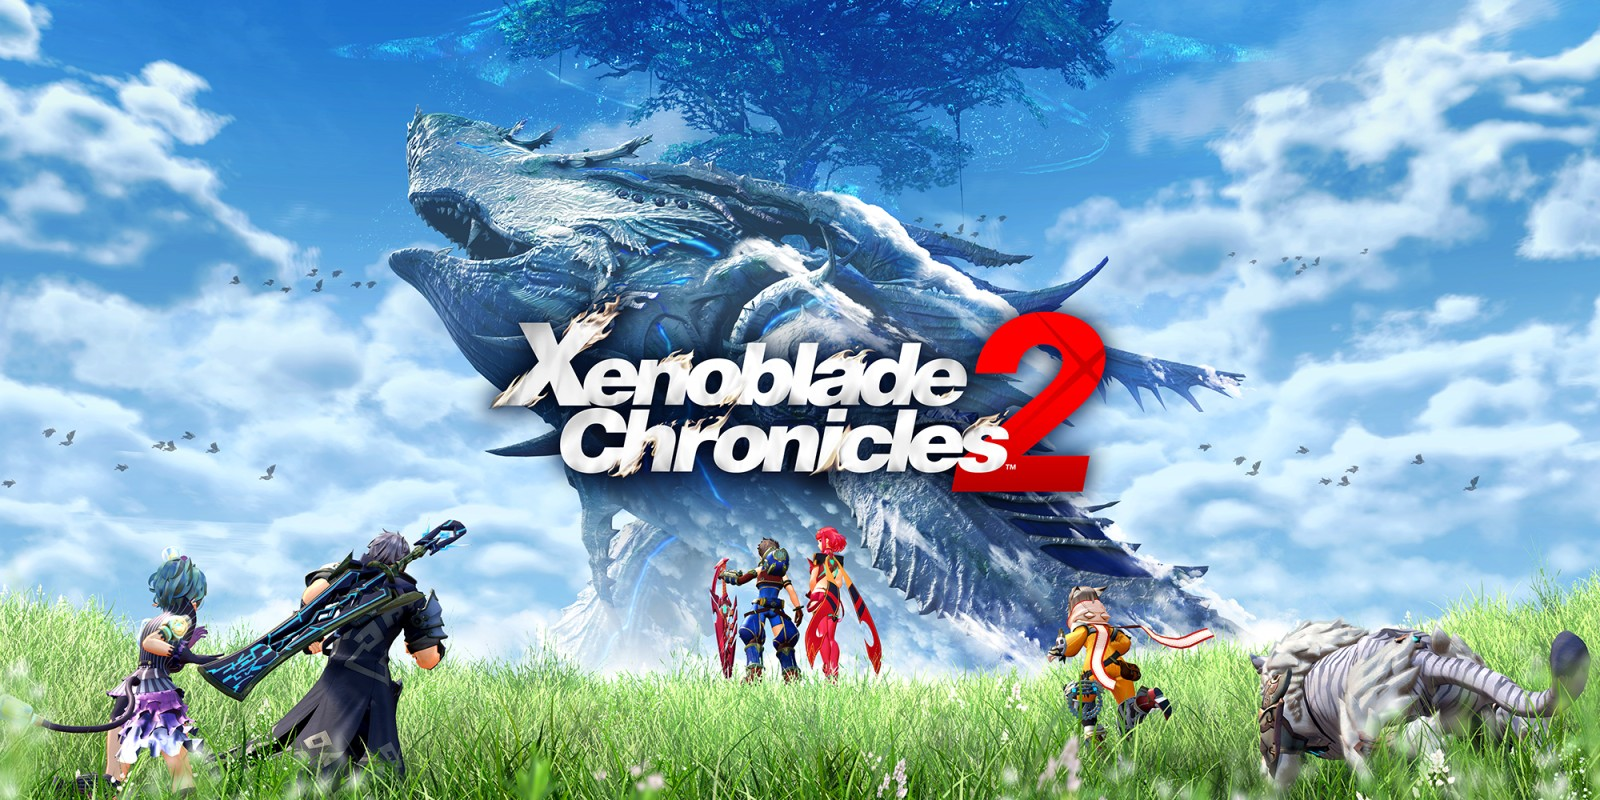 H2x1_NSwitch_XenobladeChronicles2_image1